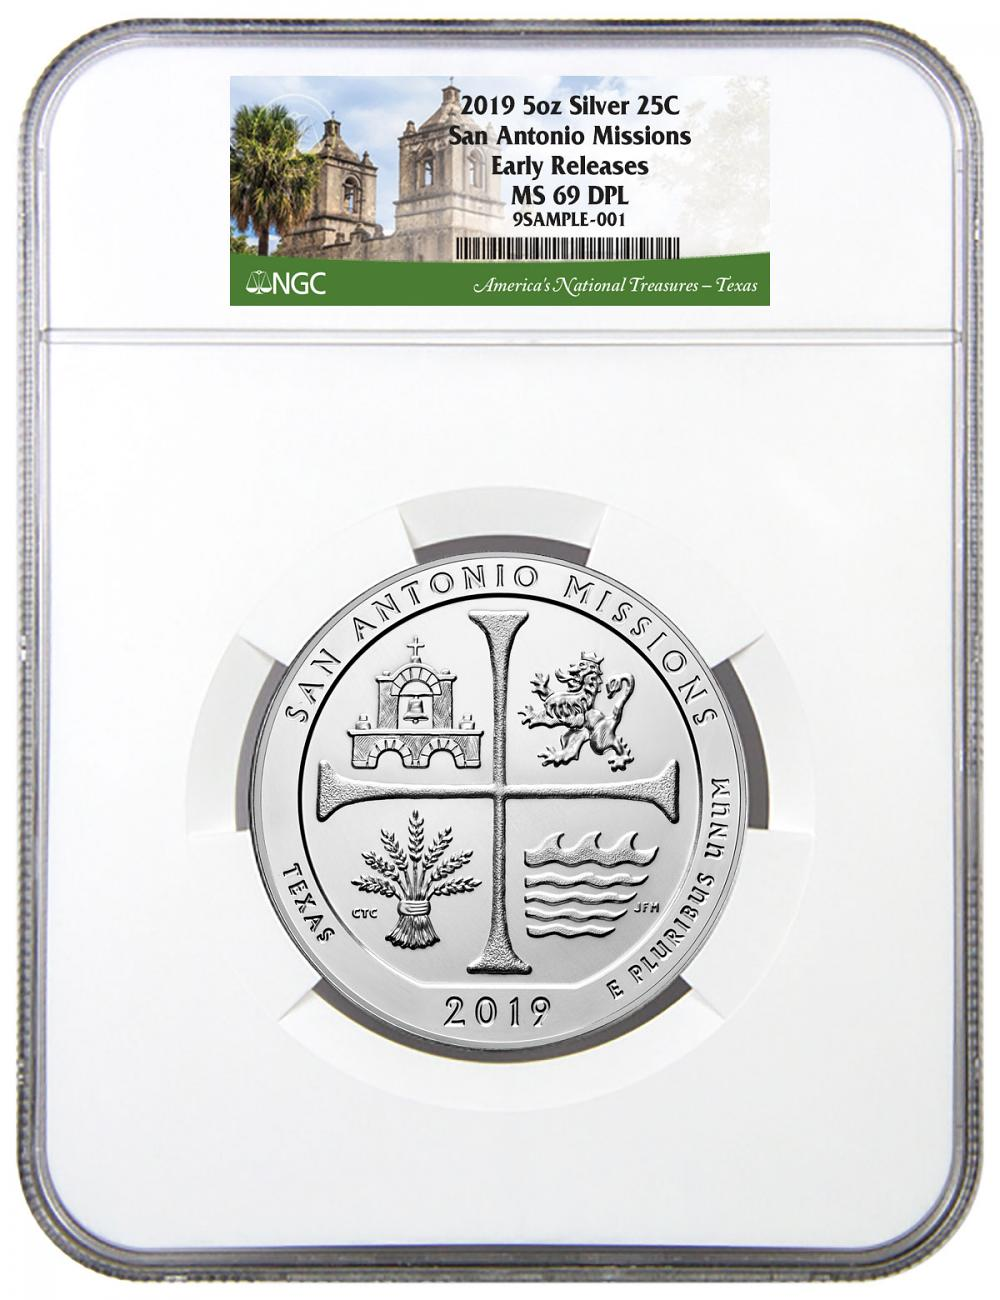 2019 San Antonio Missions Historical Park 5 oz. Silver ATB America the Beautiful Coin NGC MS69 DPL ER